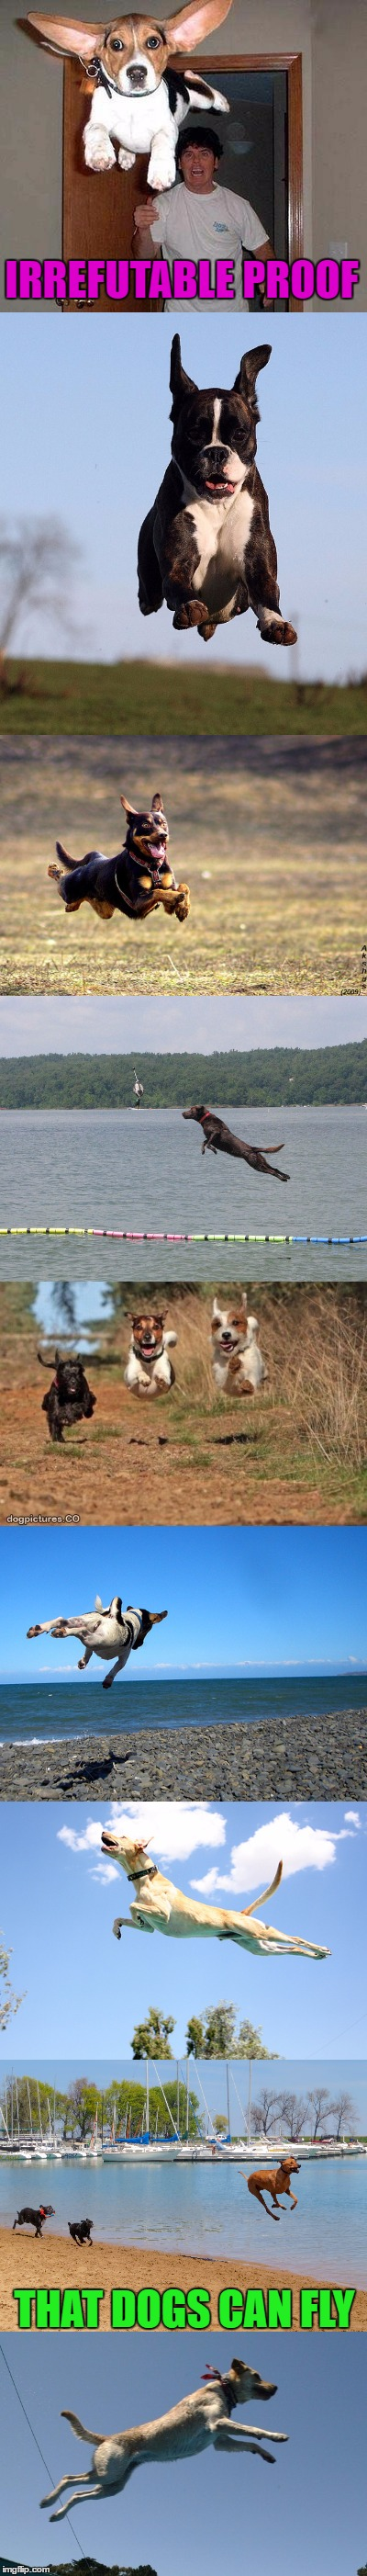 Proof of Flying Dogs | IRREFUTABLE PROOF THAT DOGS CAN FLY | image tagged in funny,meme,wmp,flying dog,dogs,funny dogs | made w/ Imgflip meme maker